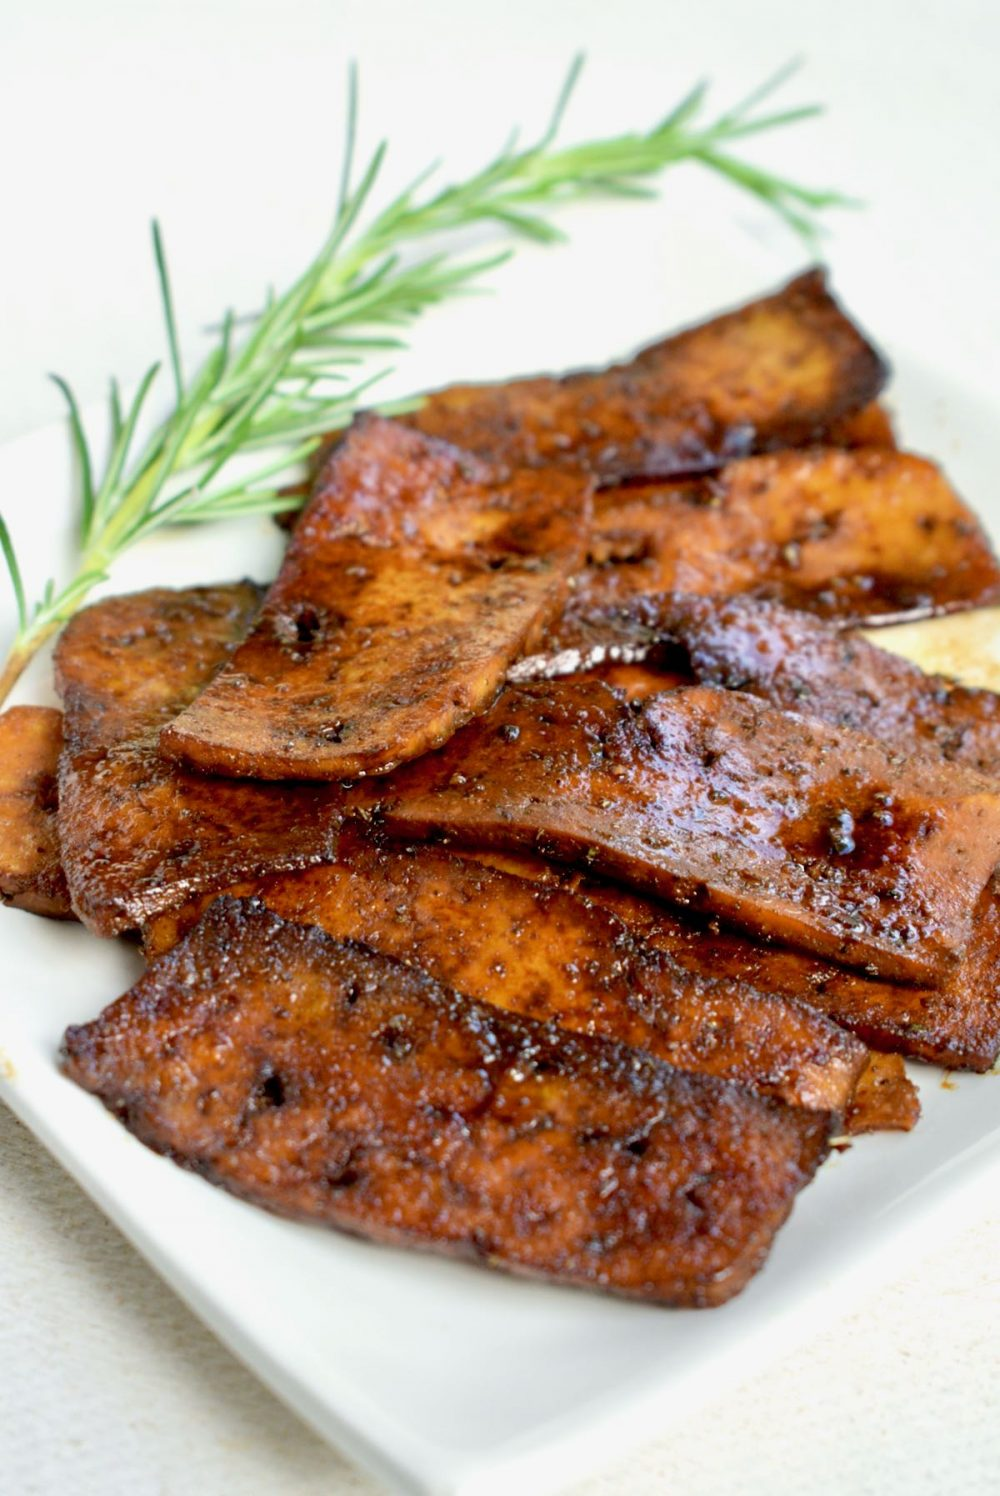 A juicy pile of dark brown, fried slices of tofu on a white square plate, decorated with a twig of fresh rosemary.